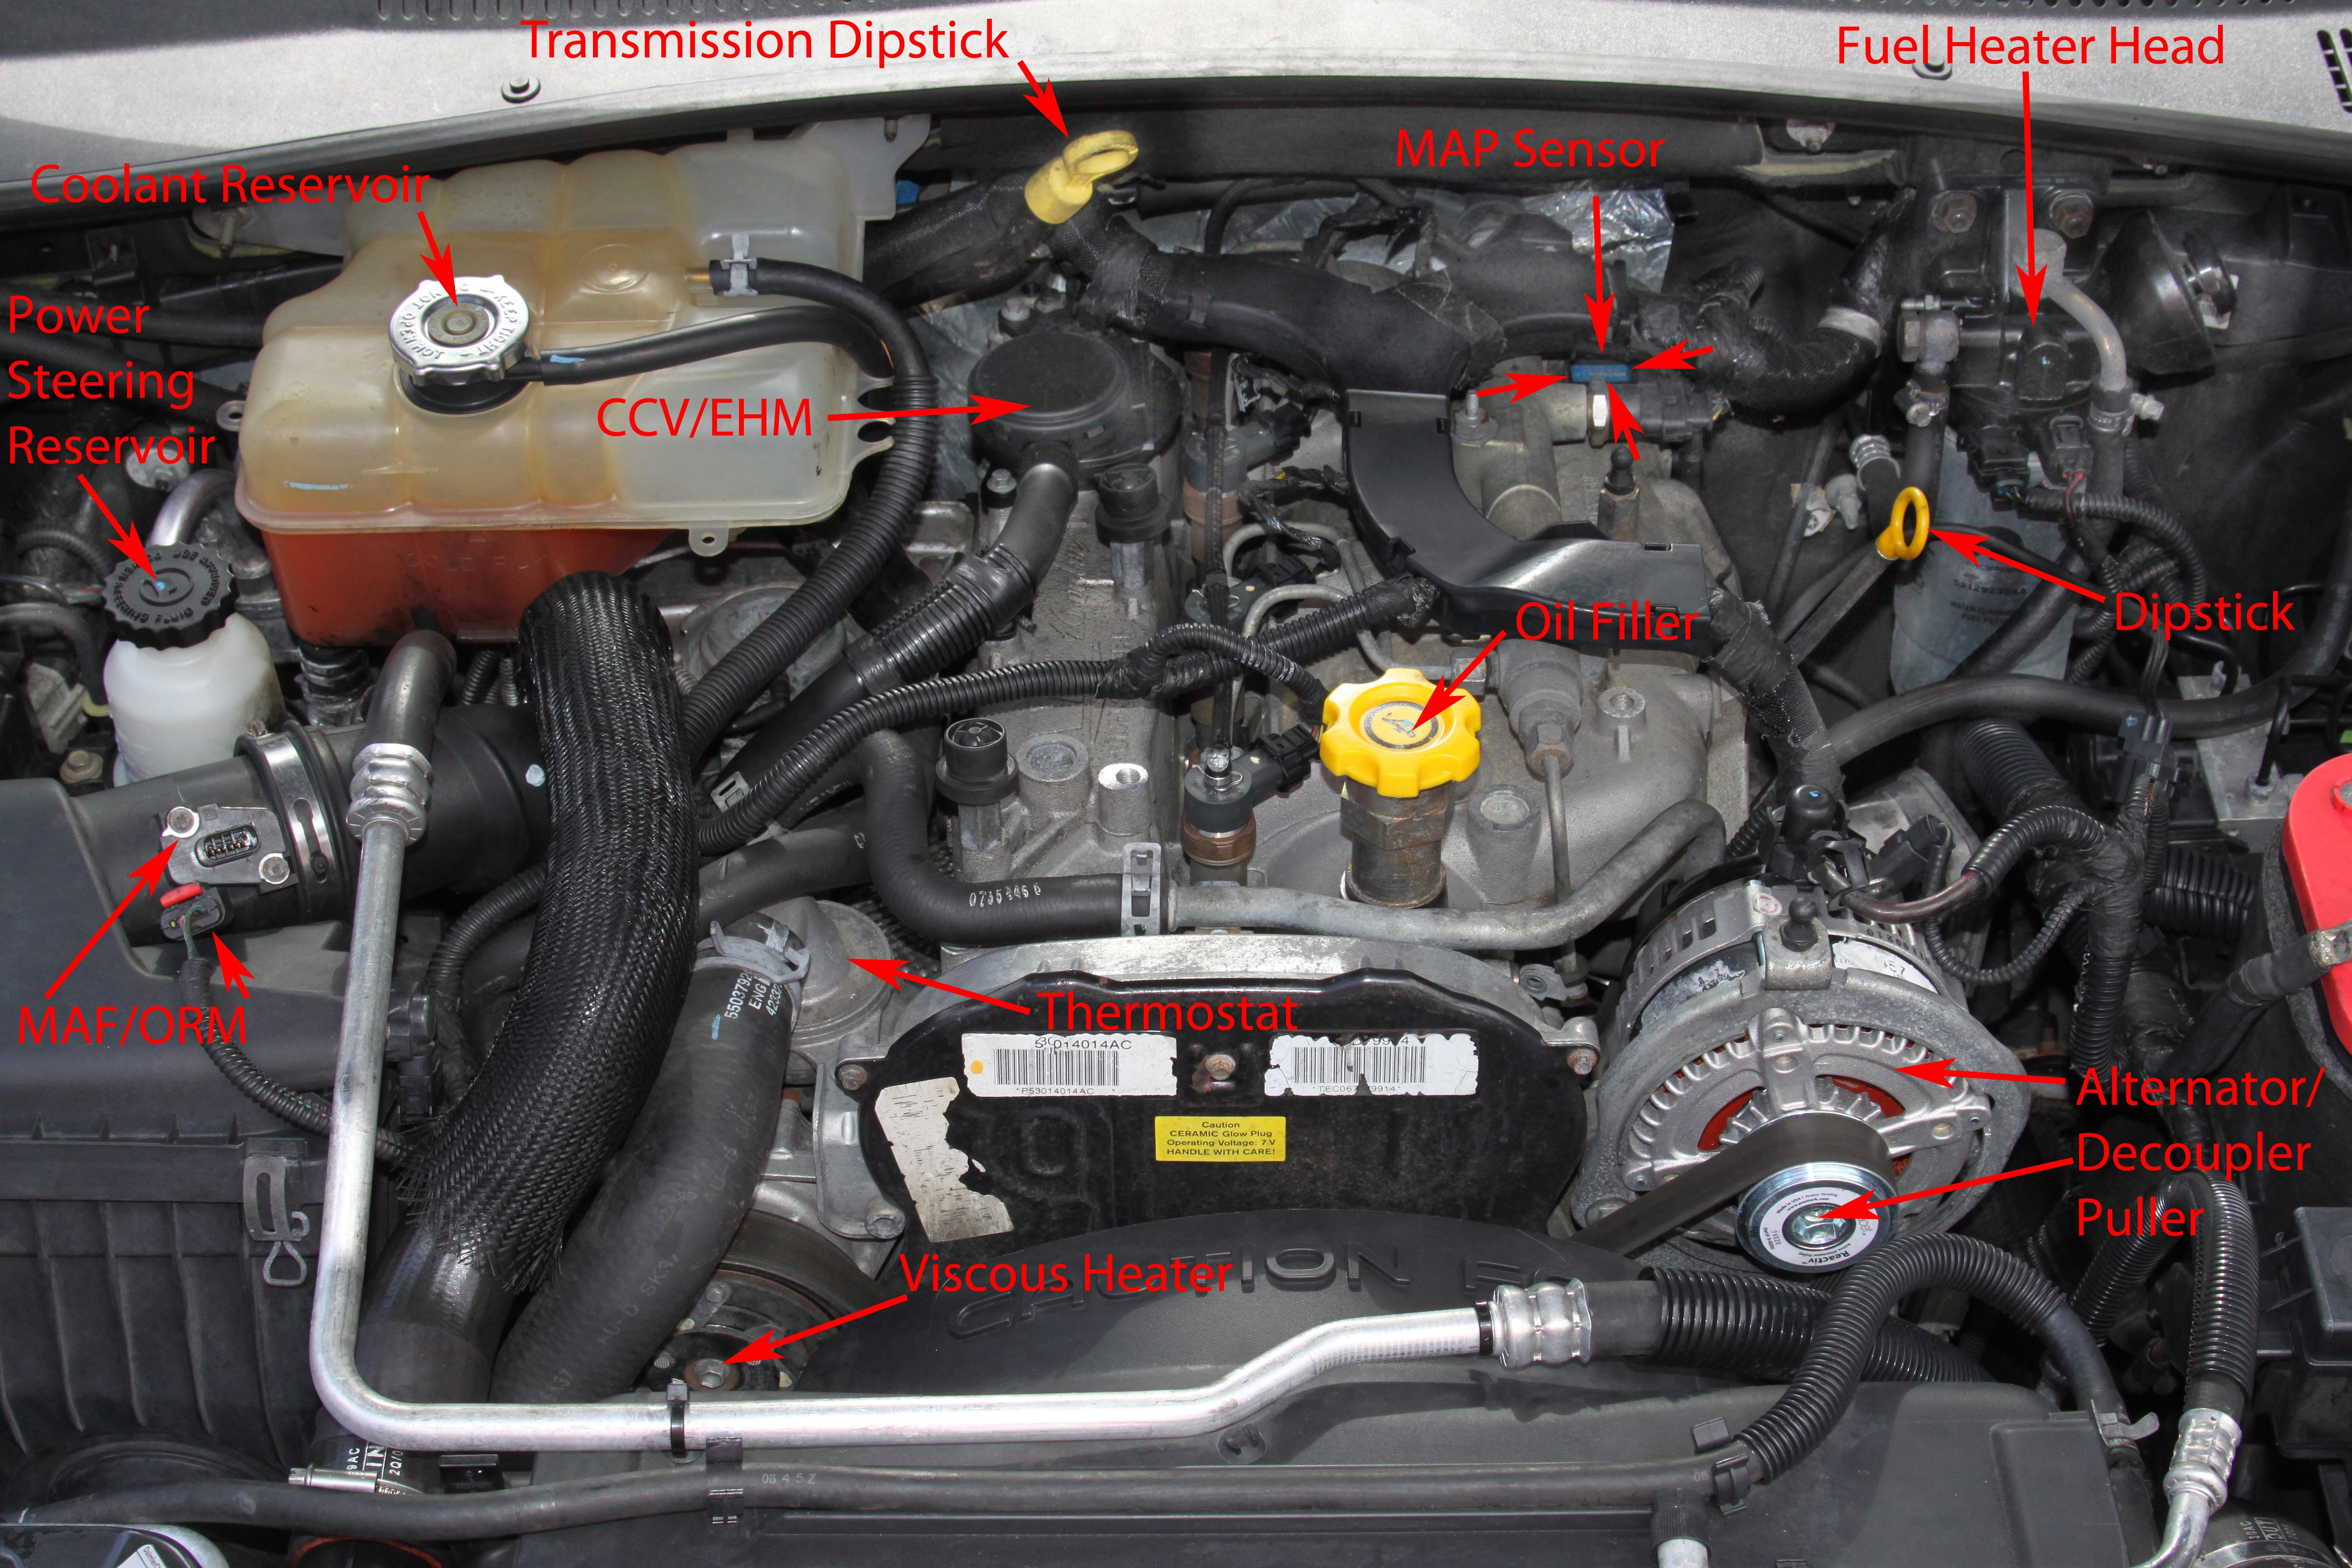 1998 Jeep Wrangler Wiring Harness Diagram 2004 Engine Grand Cherokee Stereo Lost Jeeps View Topic Sam S Crd Noob Guide Of